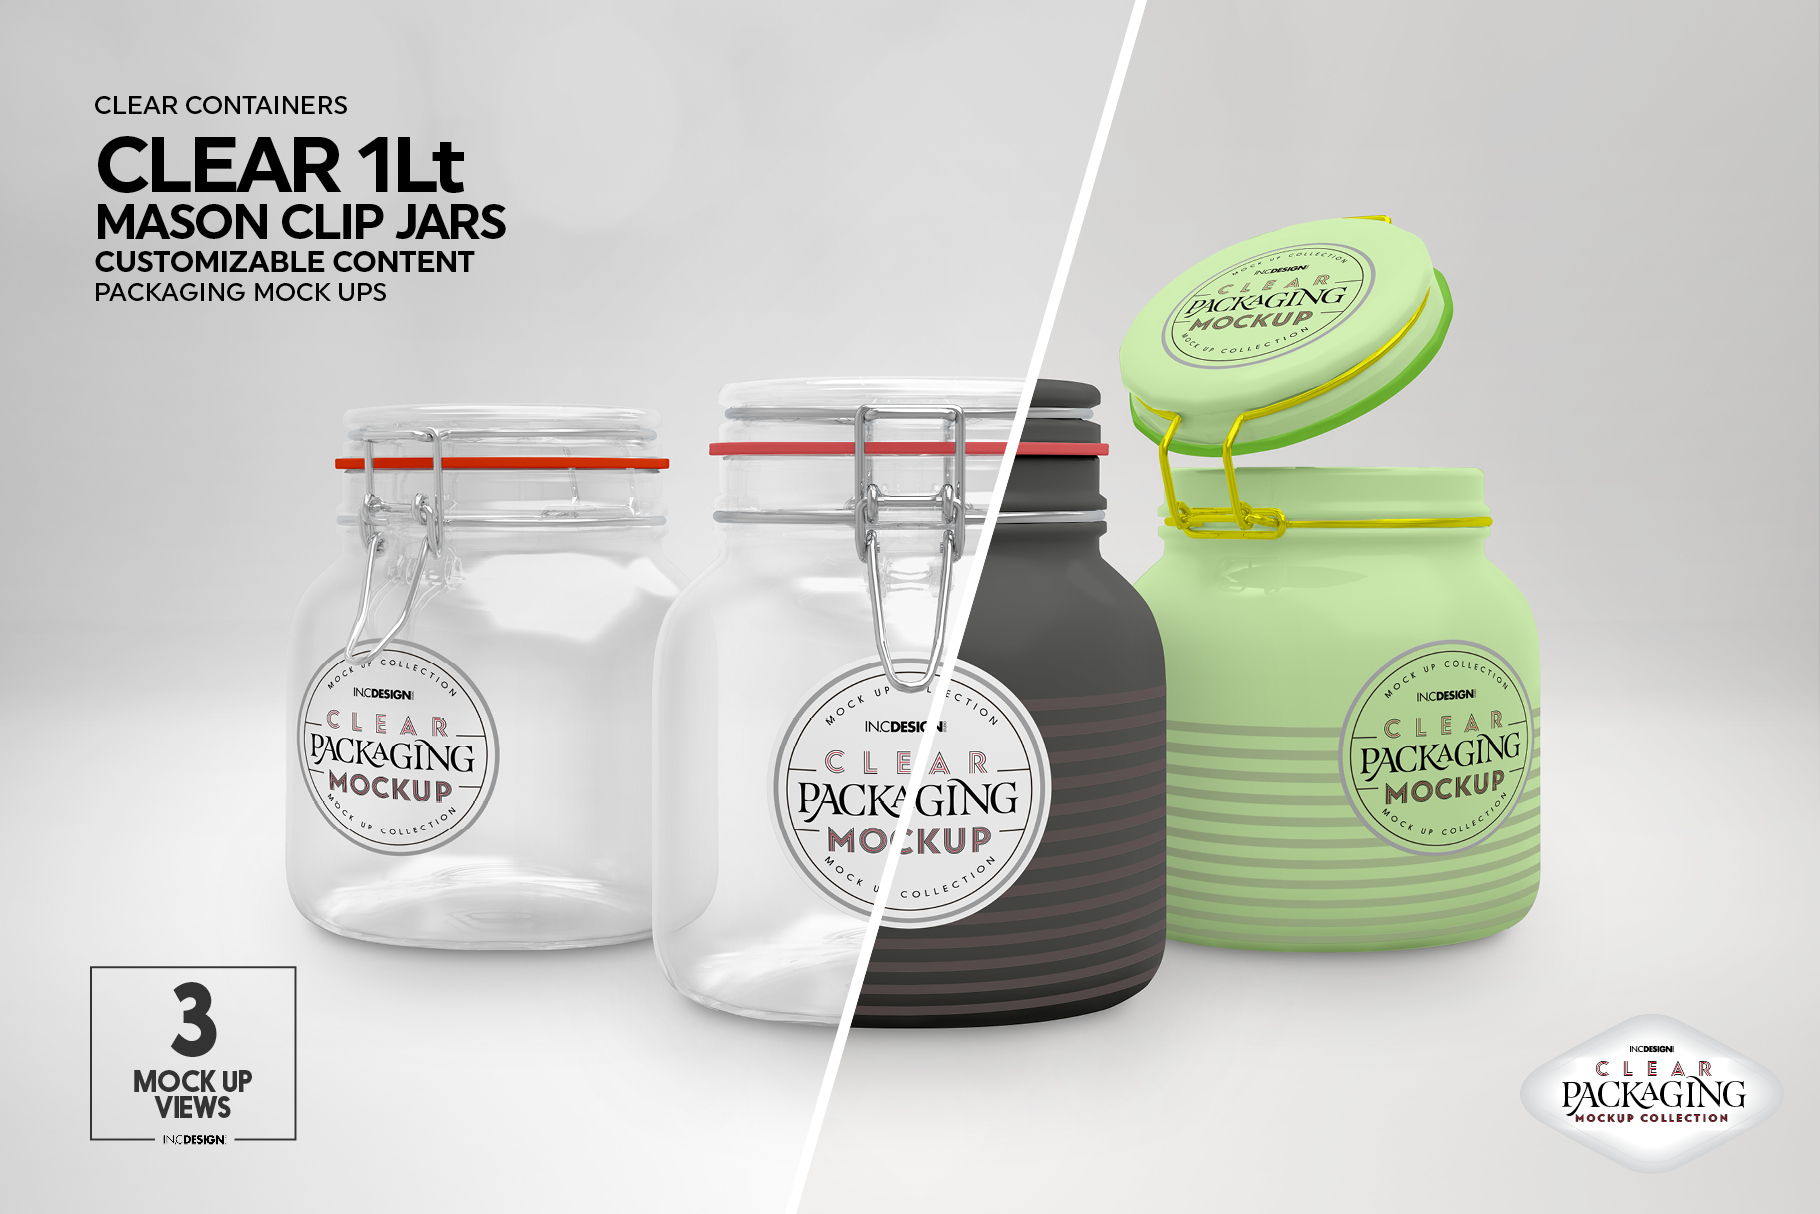 Clear 1Liter Mason Clip Jar Packaging Mockup example image 7